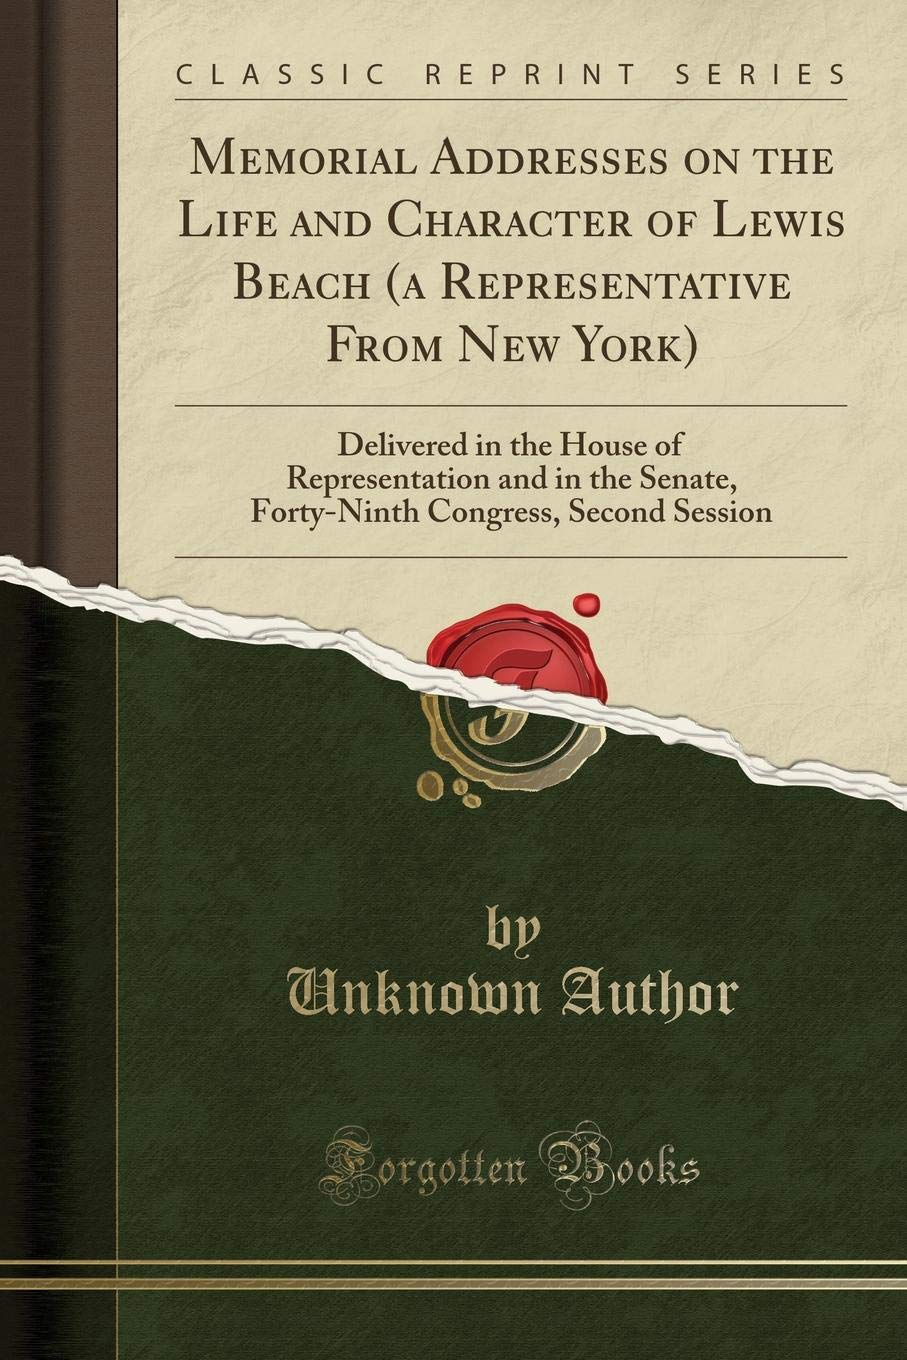 Download Memorial Addresses on the Life and Character of Lewis Beach (a Representative From New York): Delivered in the House of Representation and in the ... Congress, Second Session (Classic Reprint) PDF ePub ebook